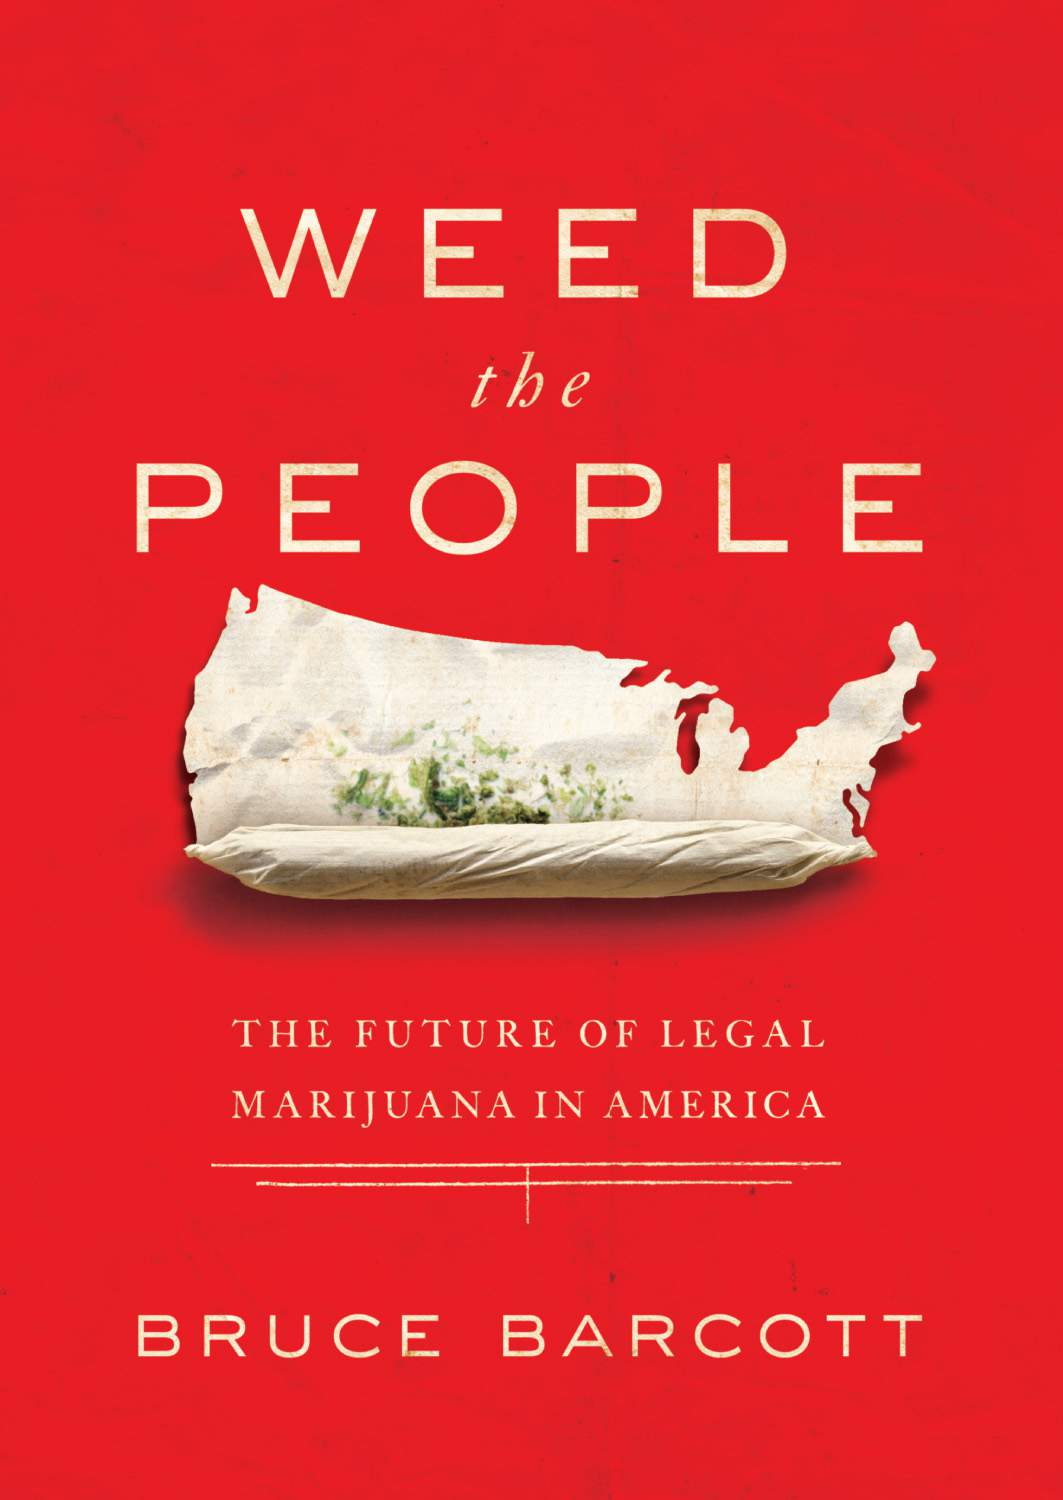 Image of Bruce Barcott's book, Weed the People